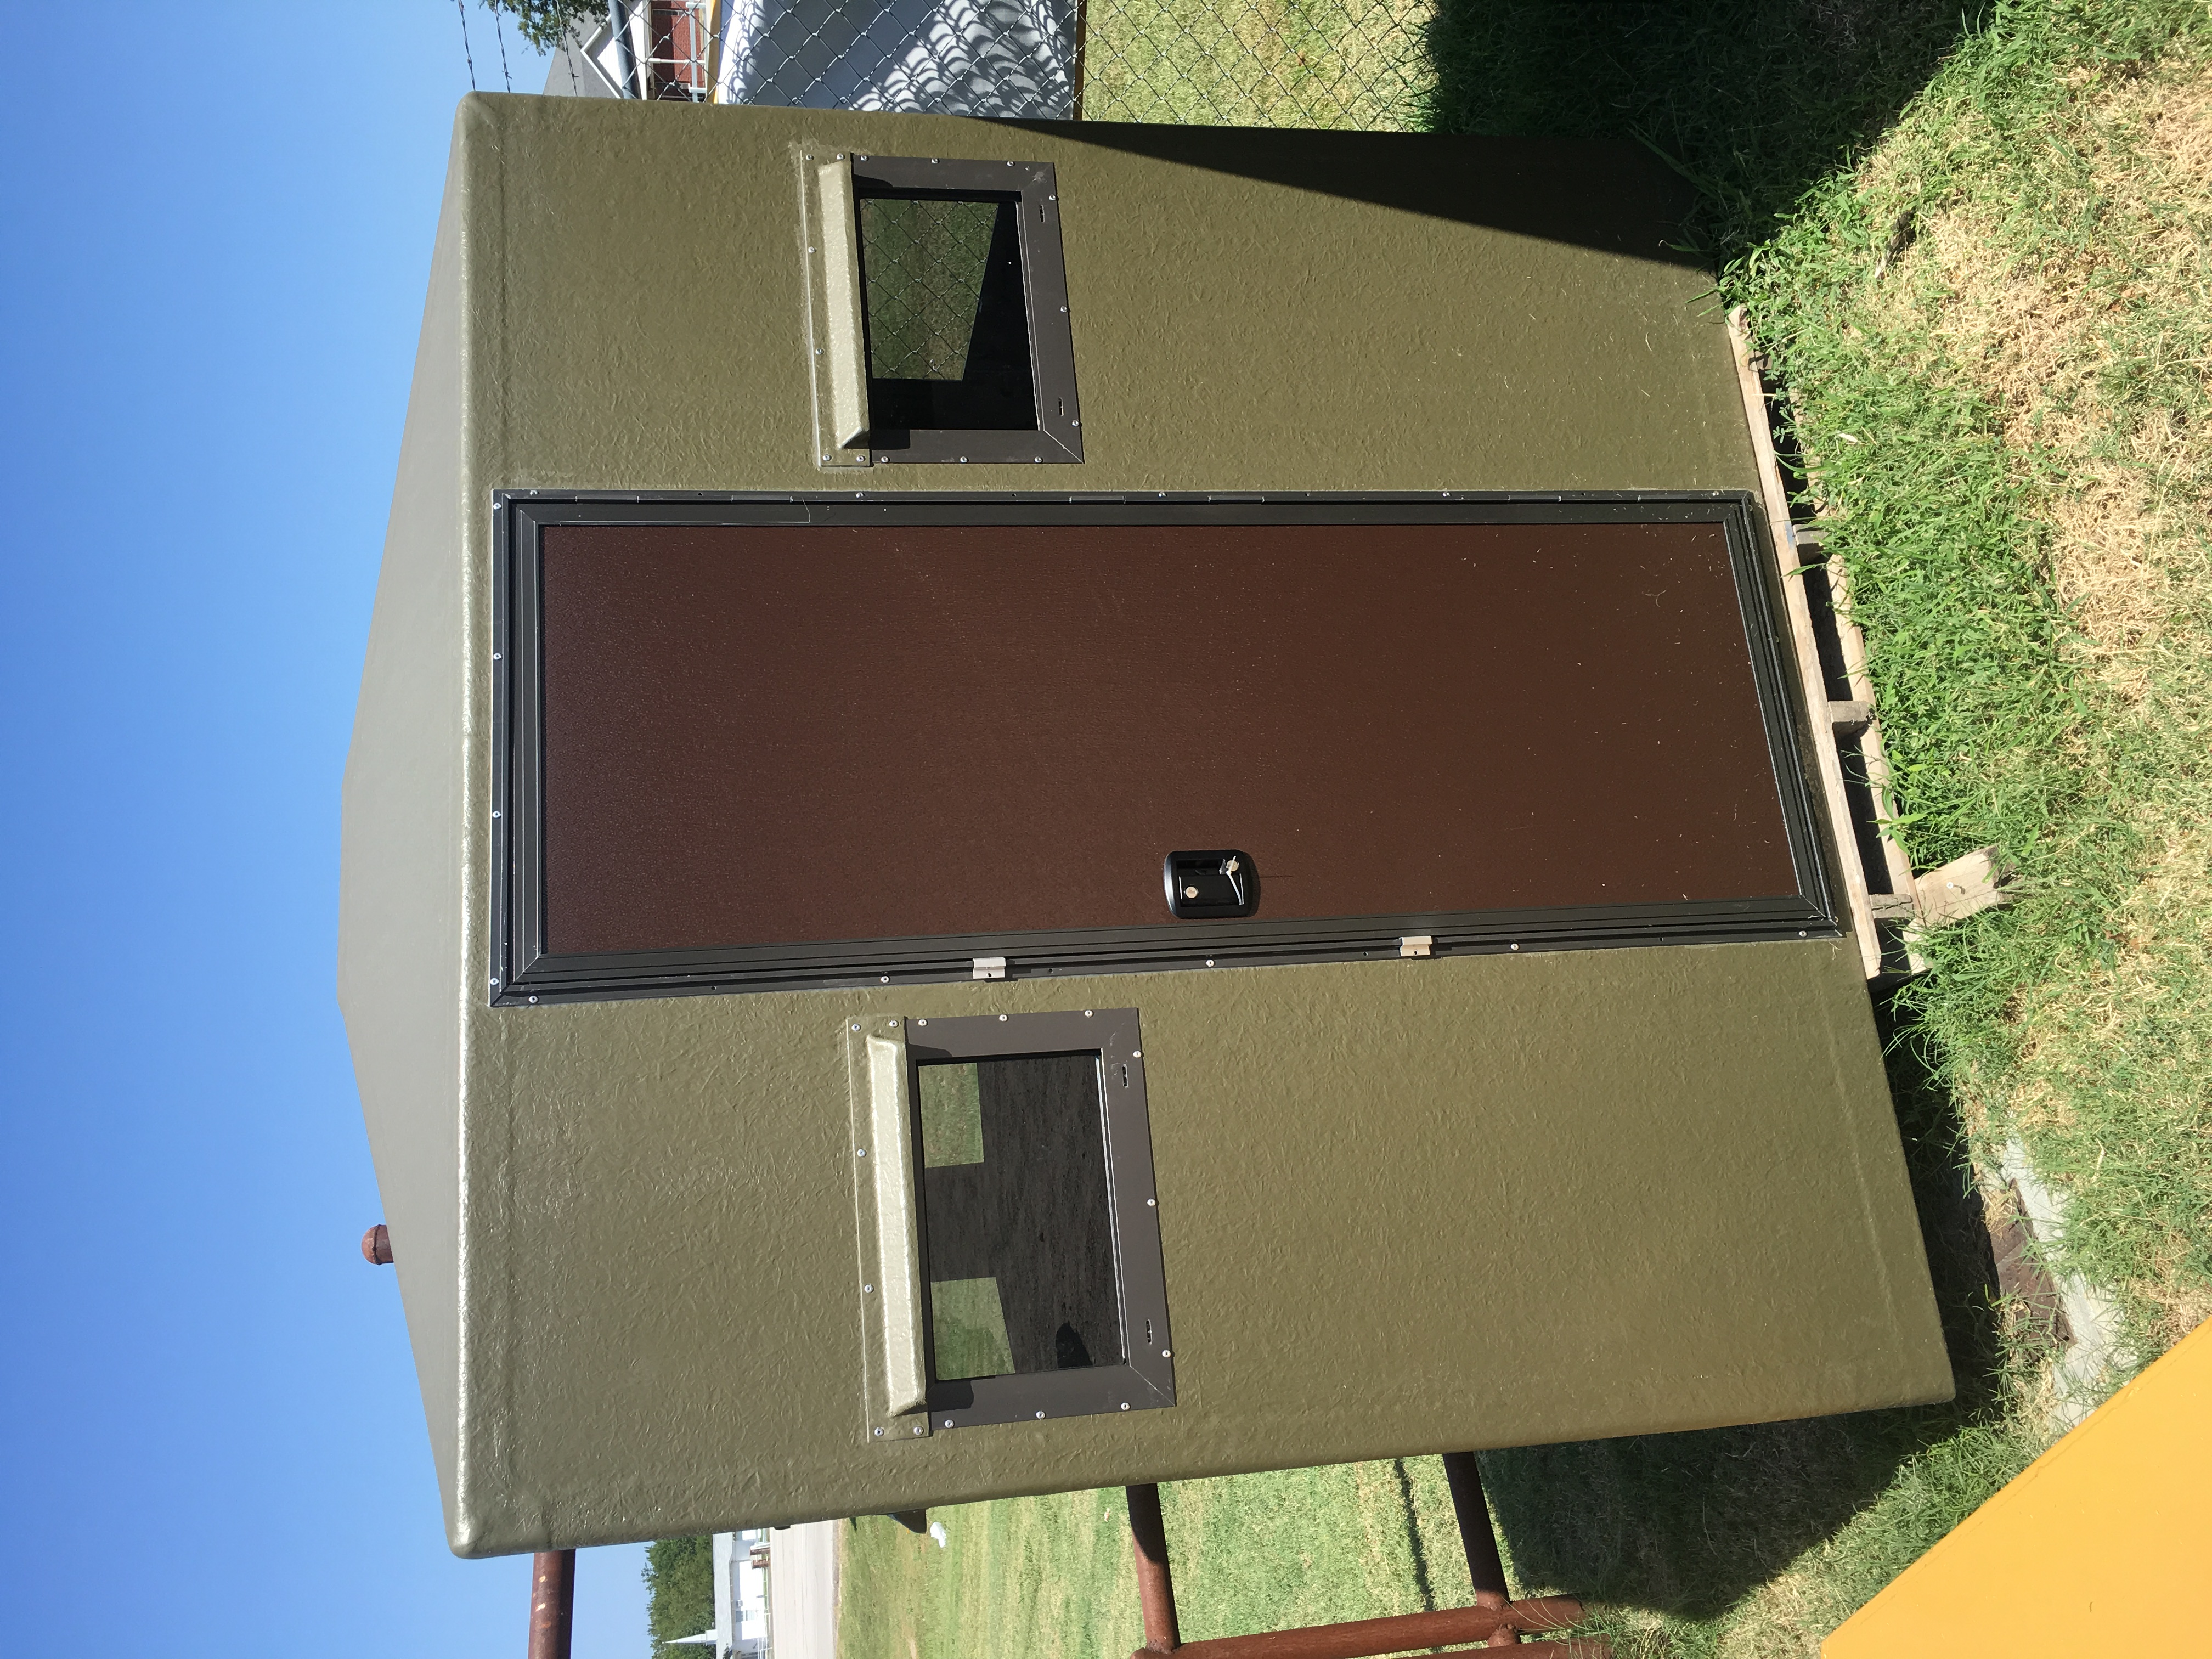 shack finished ready deer blinds shots pin for videos killer texas live in sale photos kill